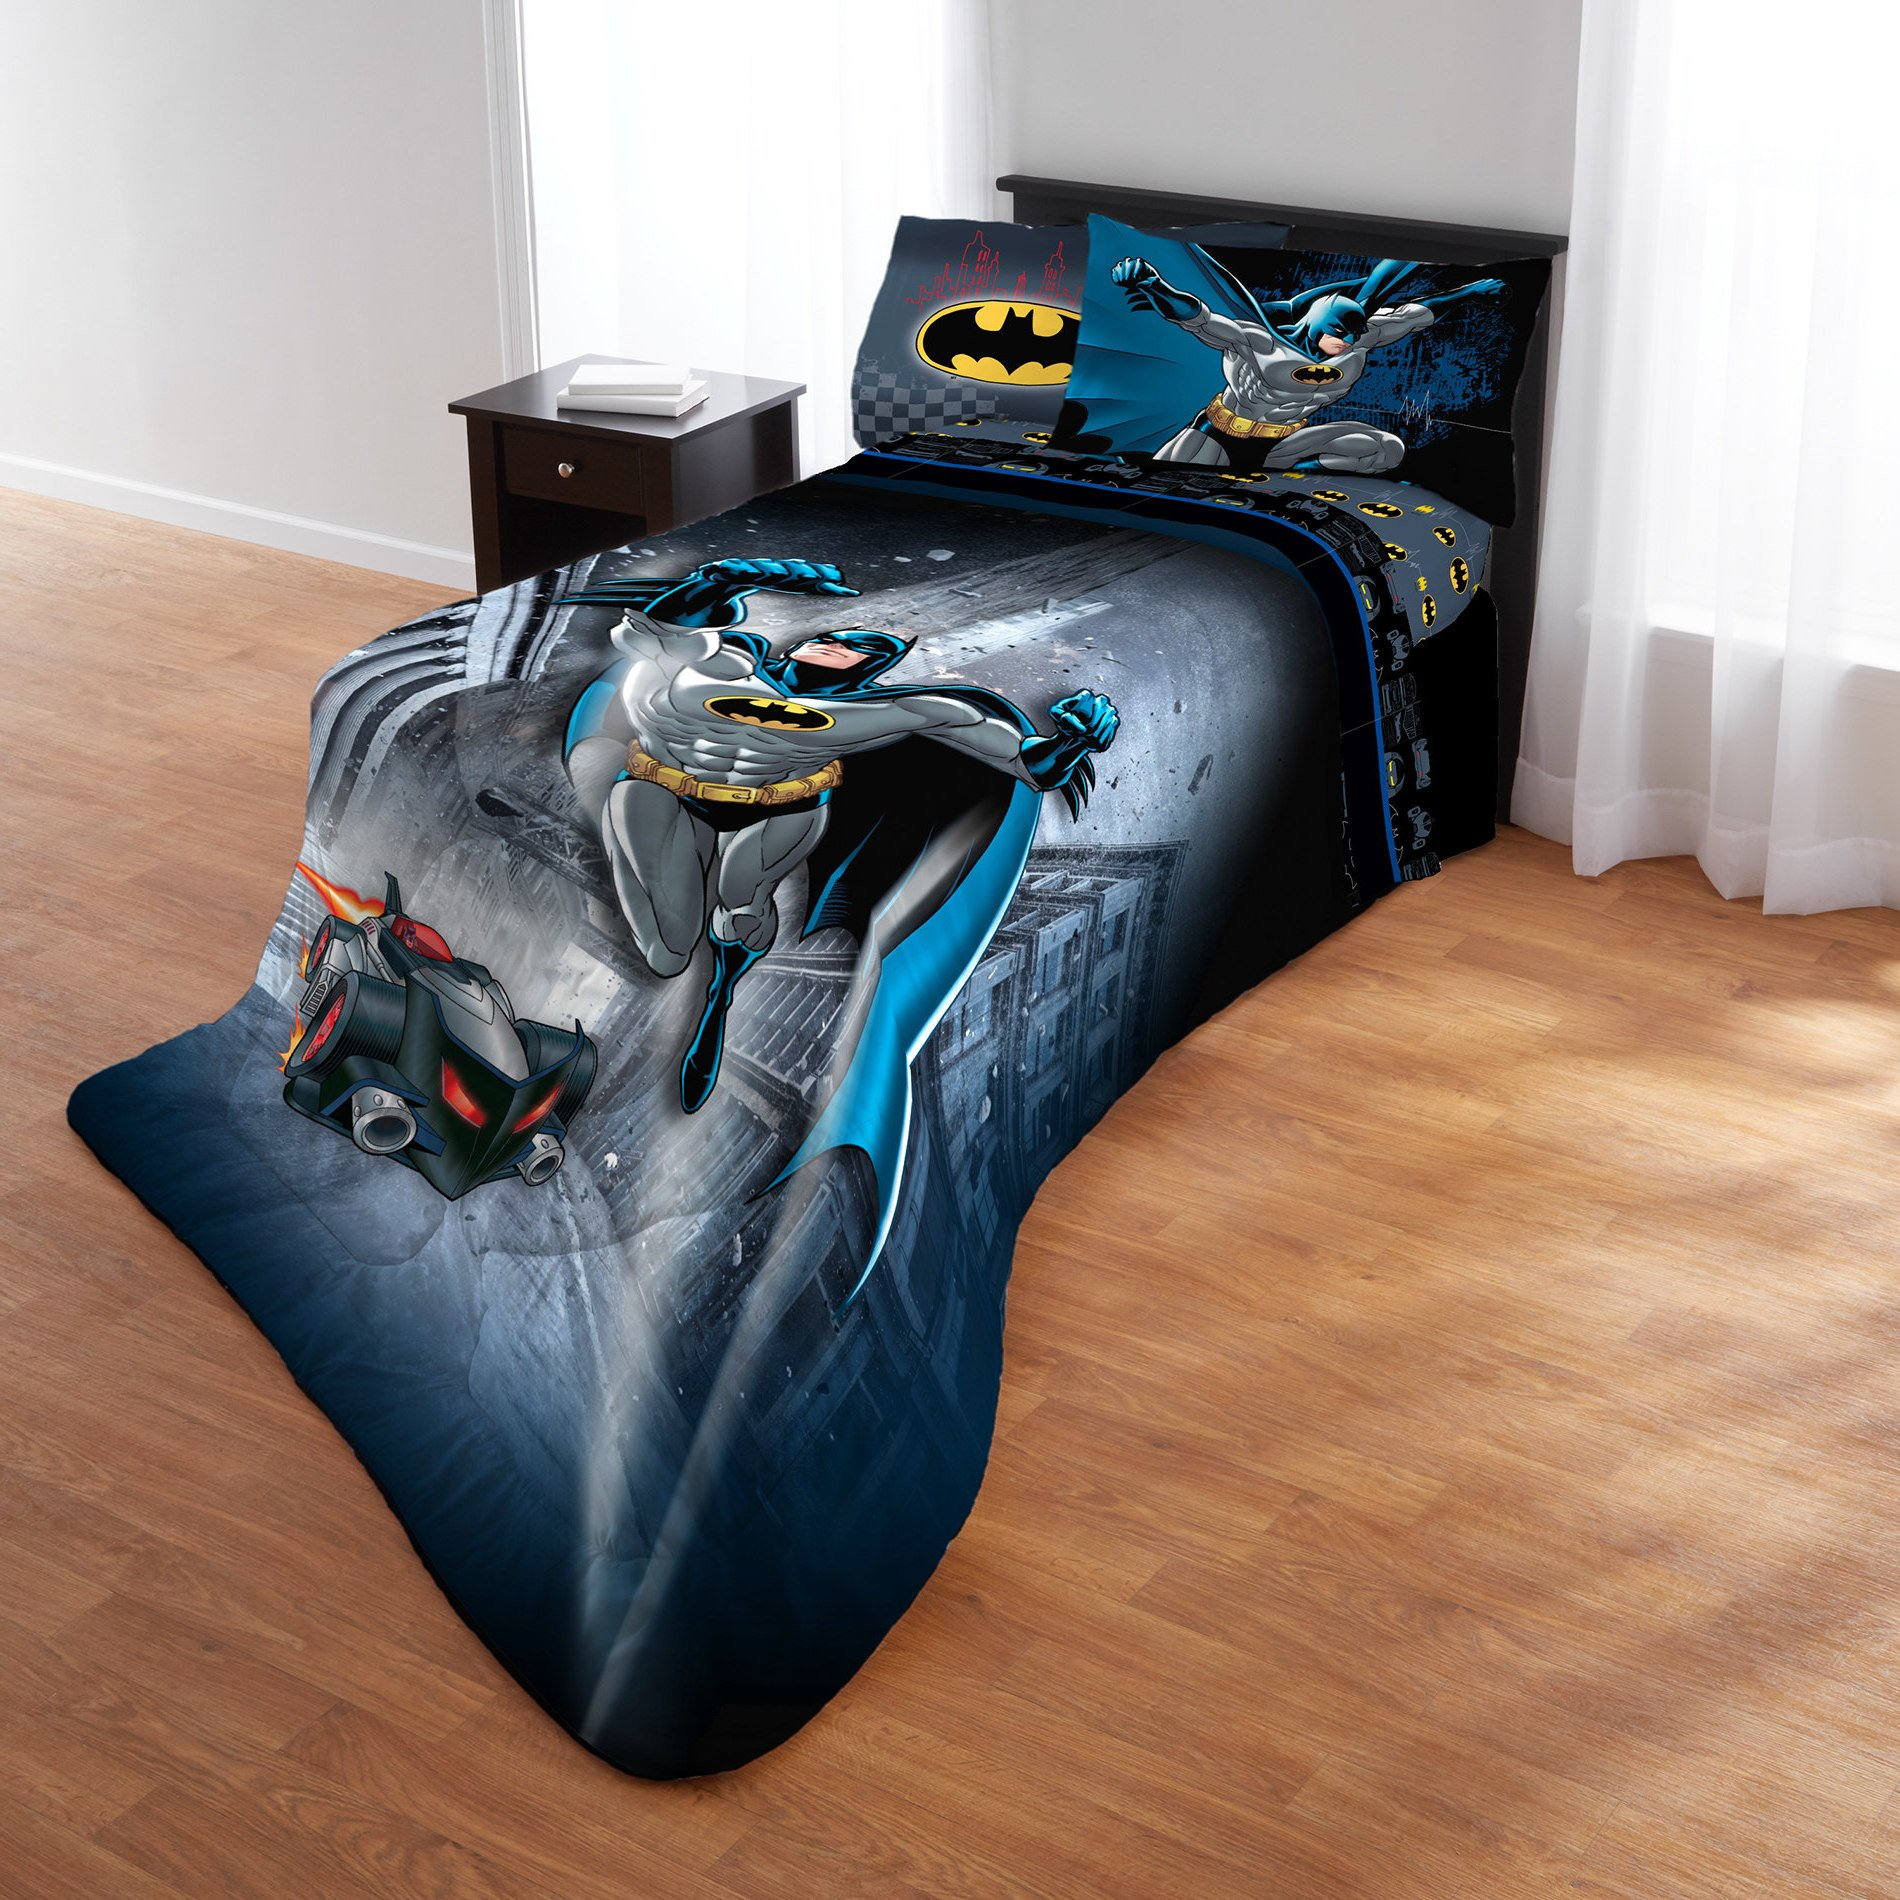 5 Piece Multi Color Batman Printed Comforter Set Full, Blue Black Yellow Grey Favorite Superhero Cartoon Magical Movie Teen Themed Reversible Kids Bedding For Bedroom Casual Colorful Fancy, Polyester